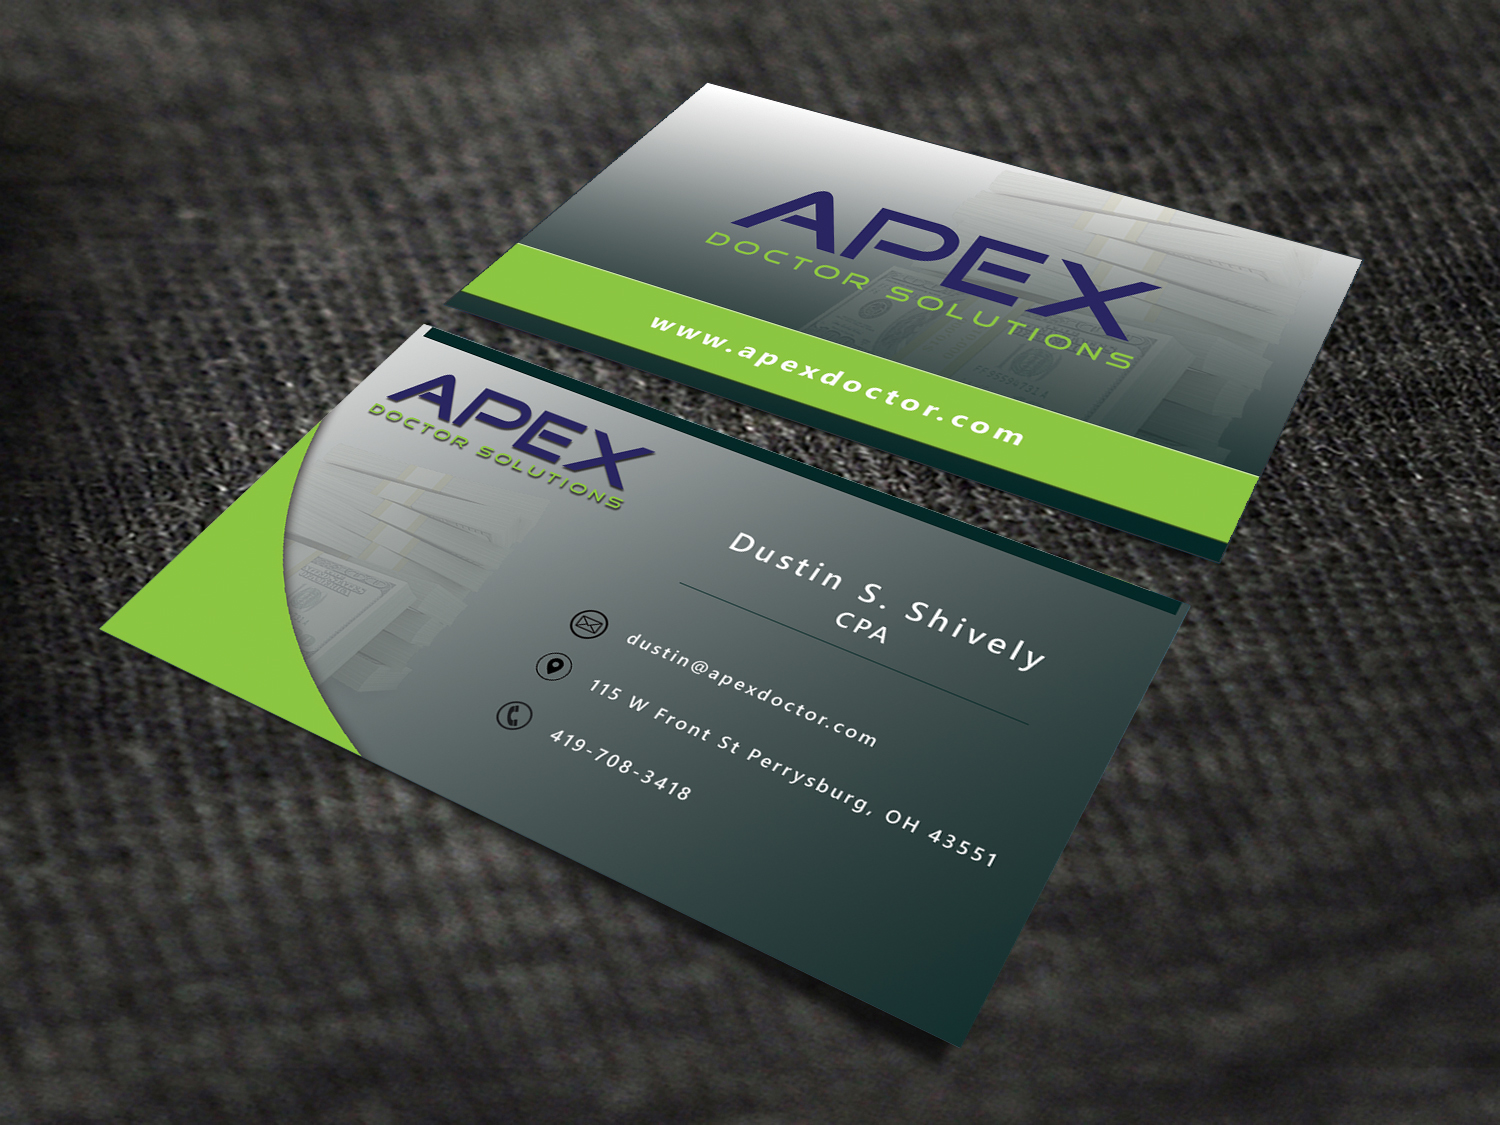 Elegant playful business business card design for usa chemical business card design by amila sri muthukelum for usa chemical supply design 15843653 reheart Images